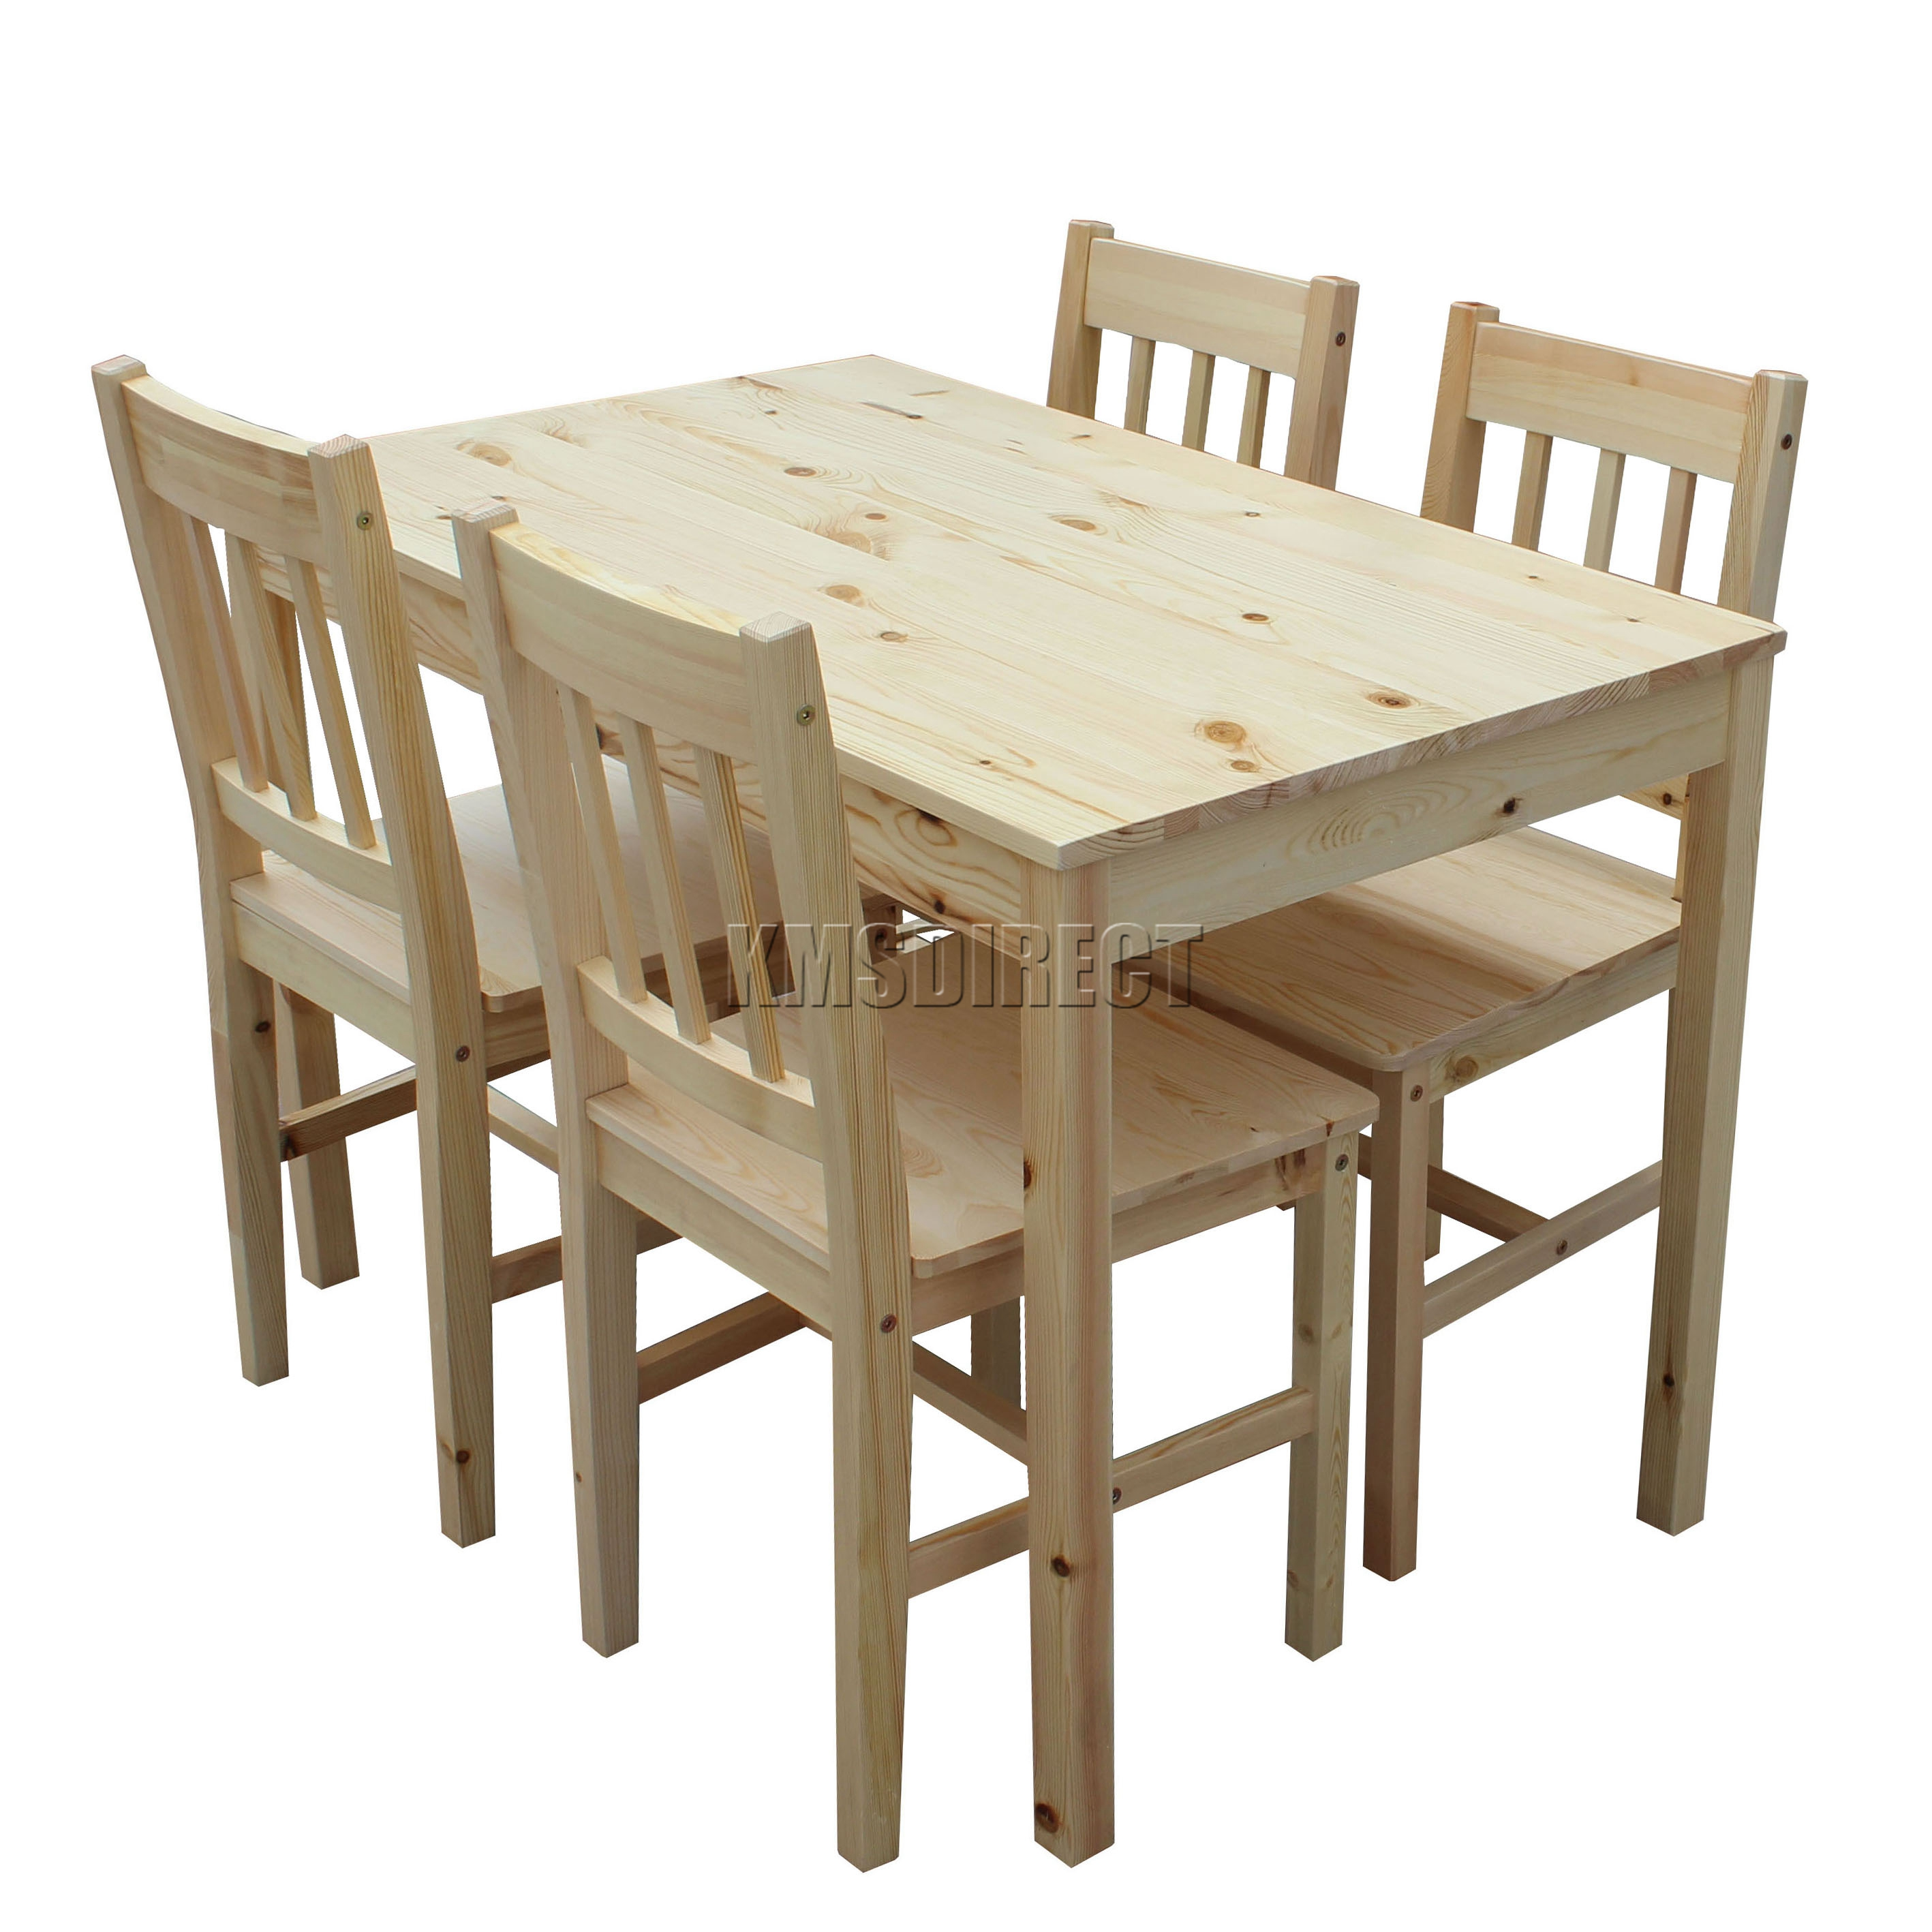 Foxhunter quality solid wooden dining table and 4 chairs for Kitchen dining table chairs